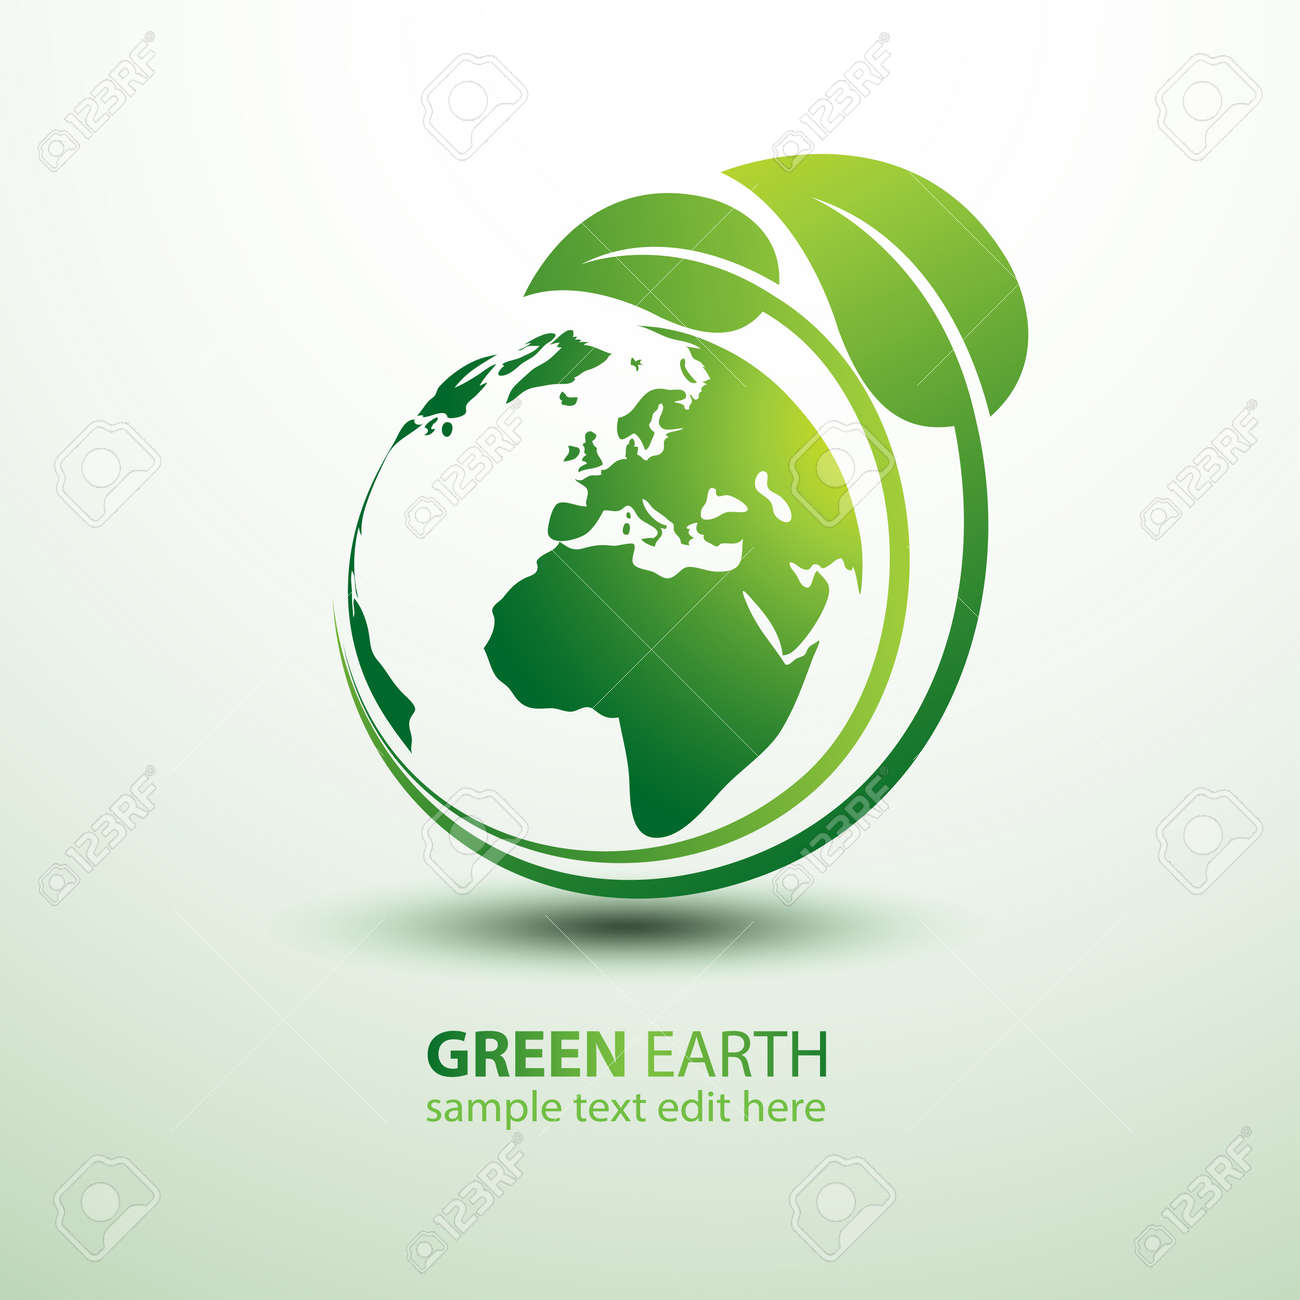 Green earth concept with leaves illustration Stock Vector - 30530501